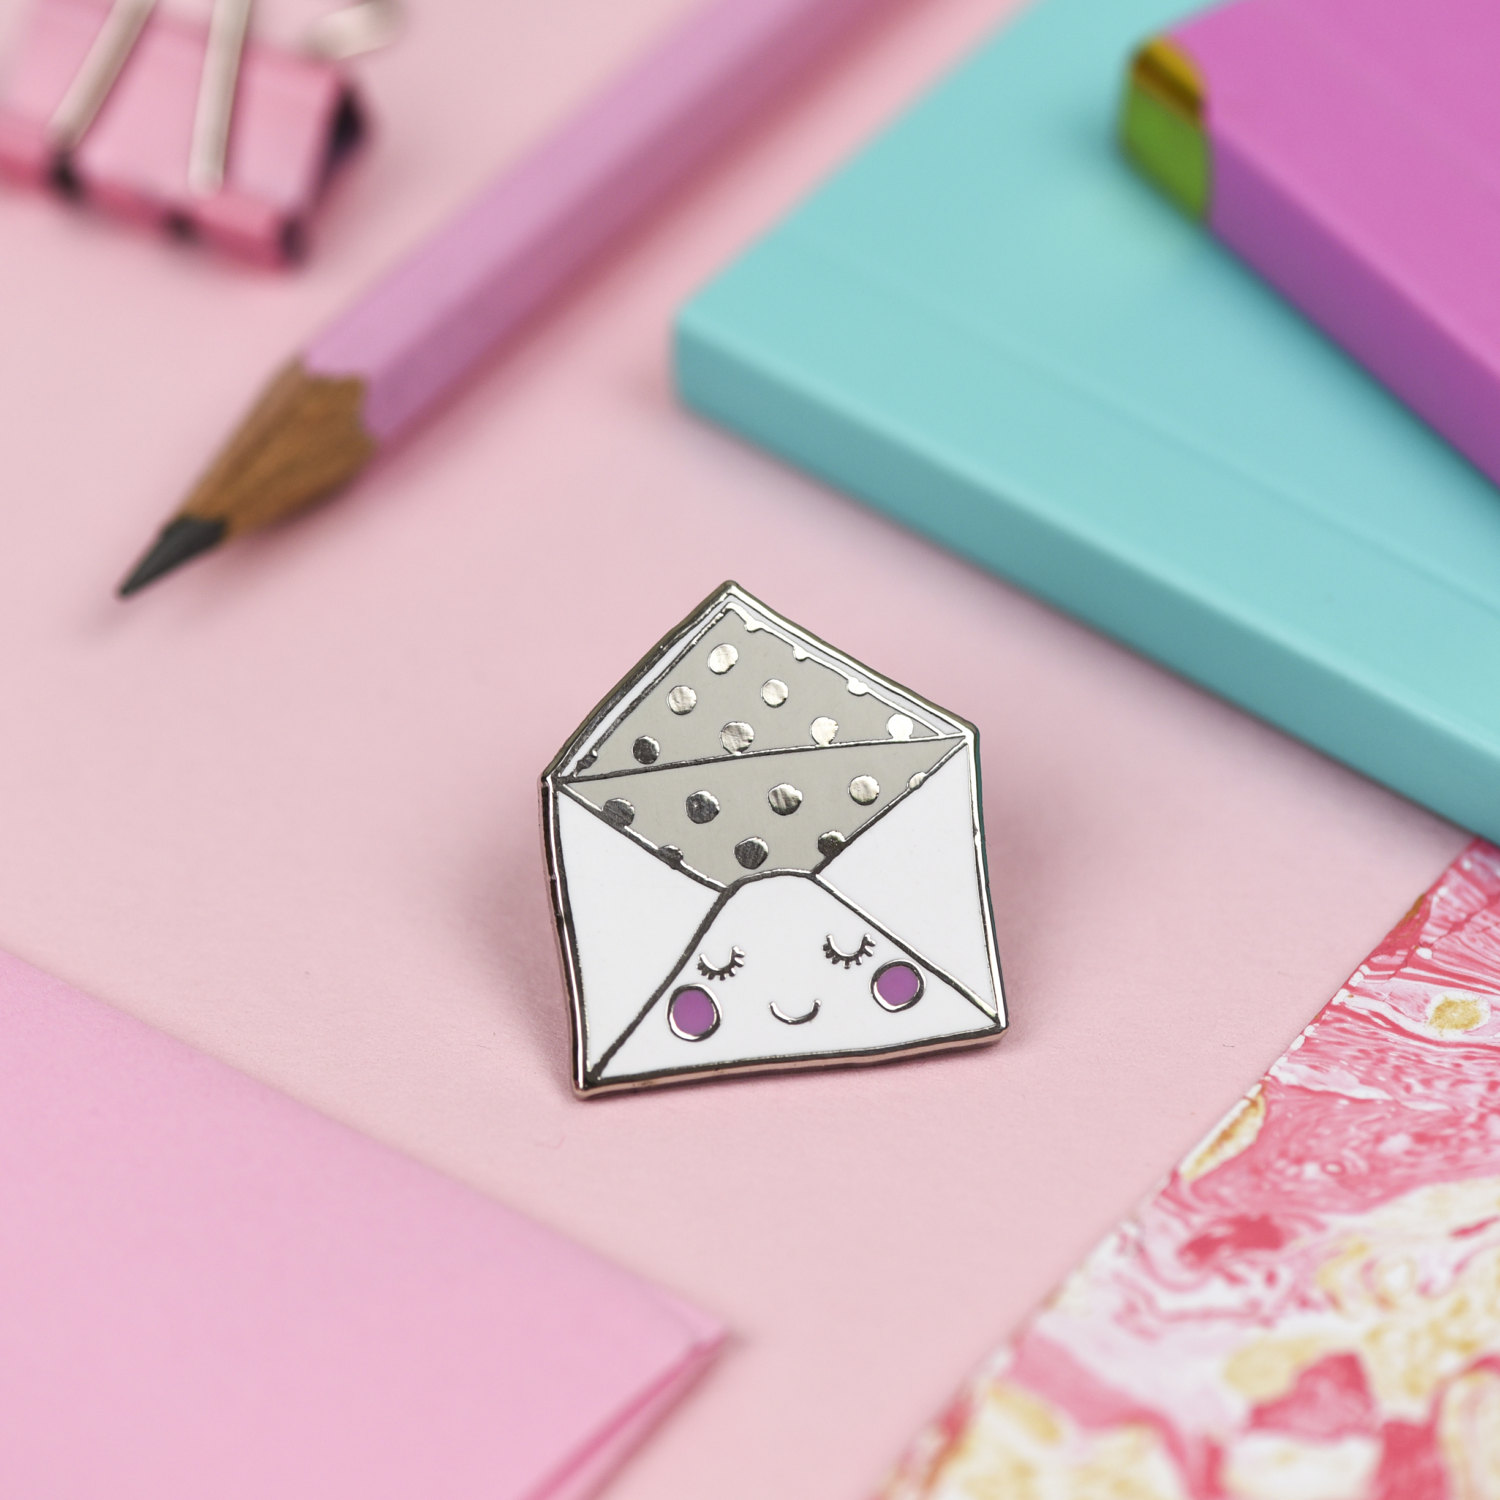 Envelope pin badge